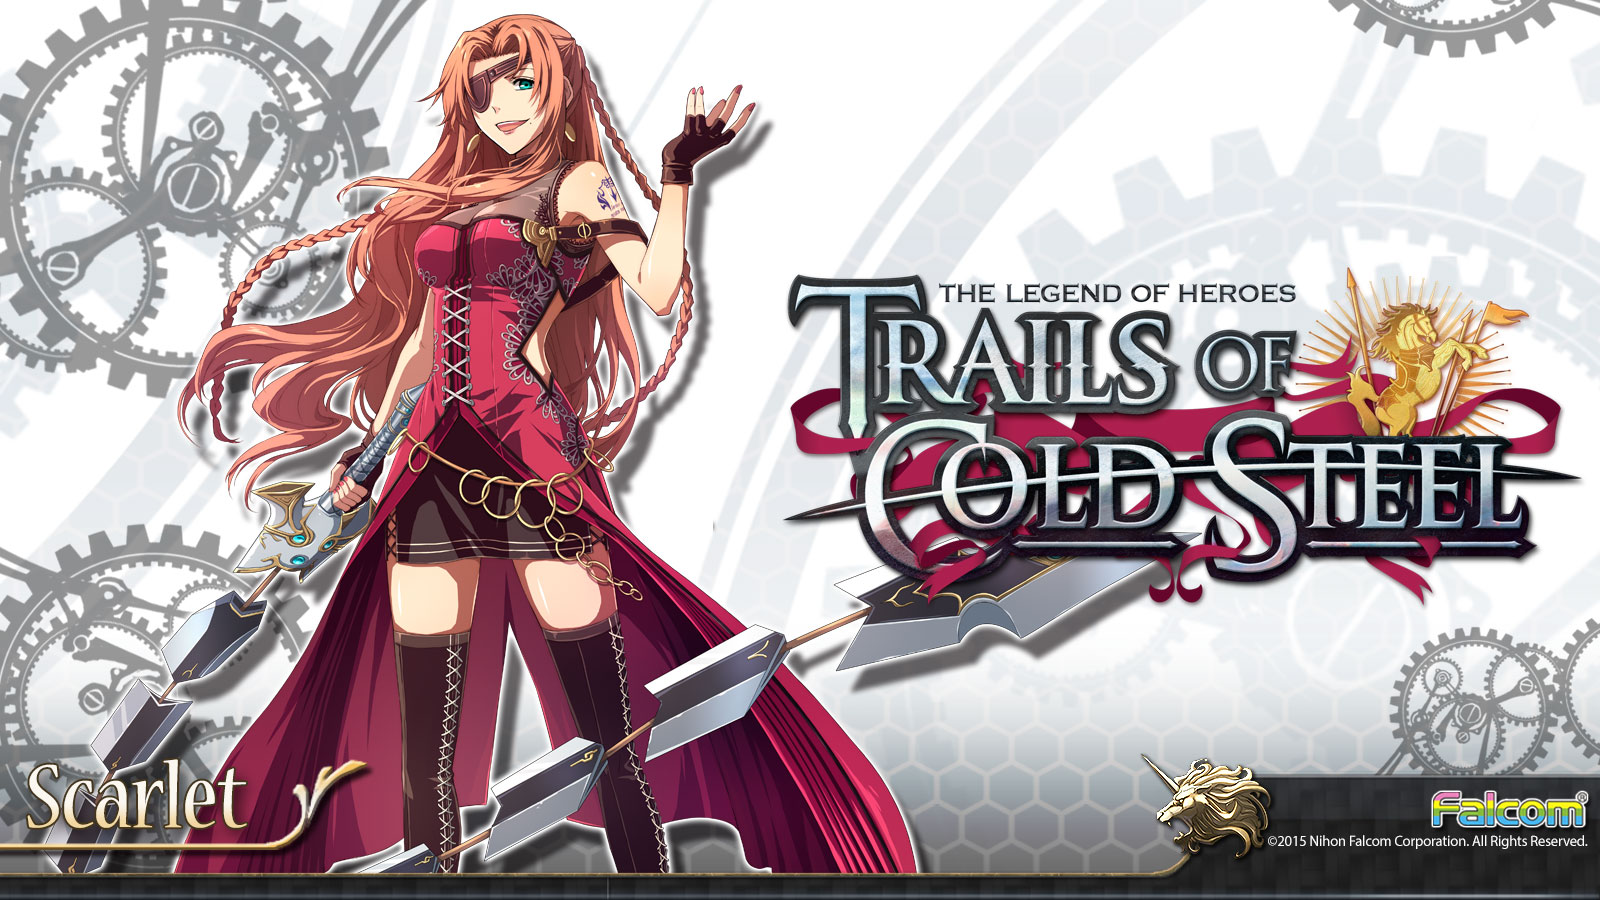 The Legend Of Heroes Trails Of Cold Steel Wallpaper 032 Scarlet